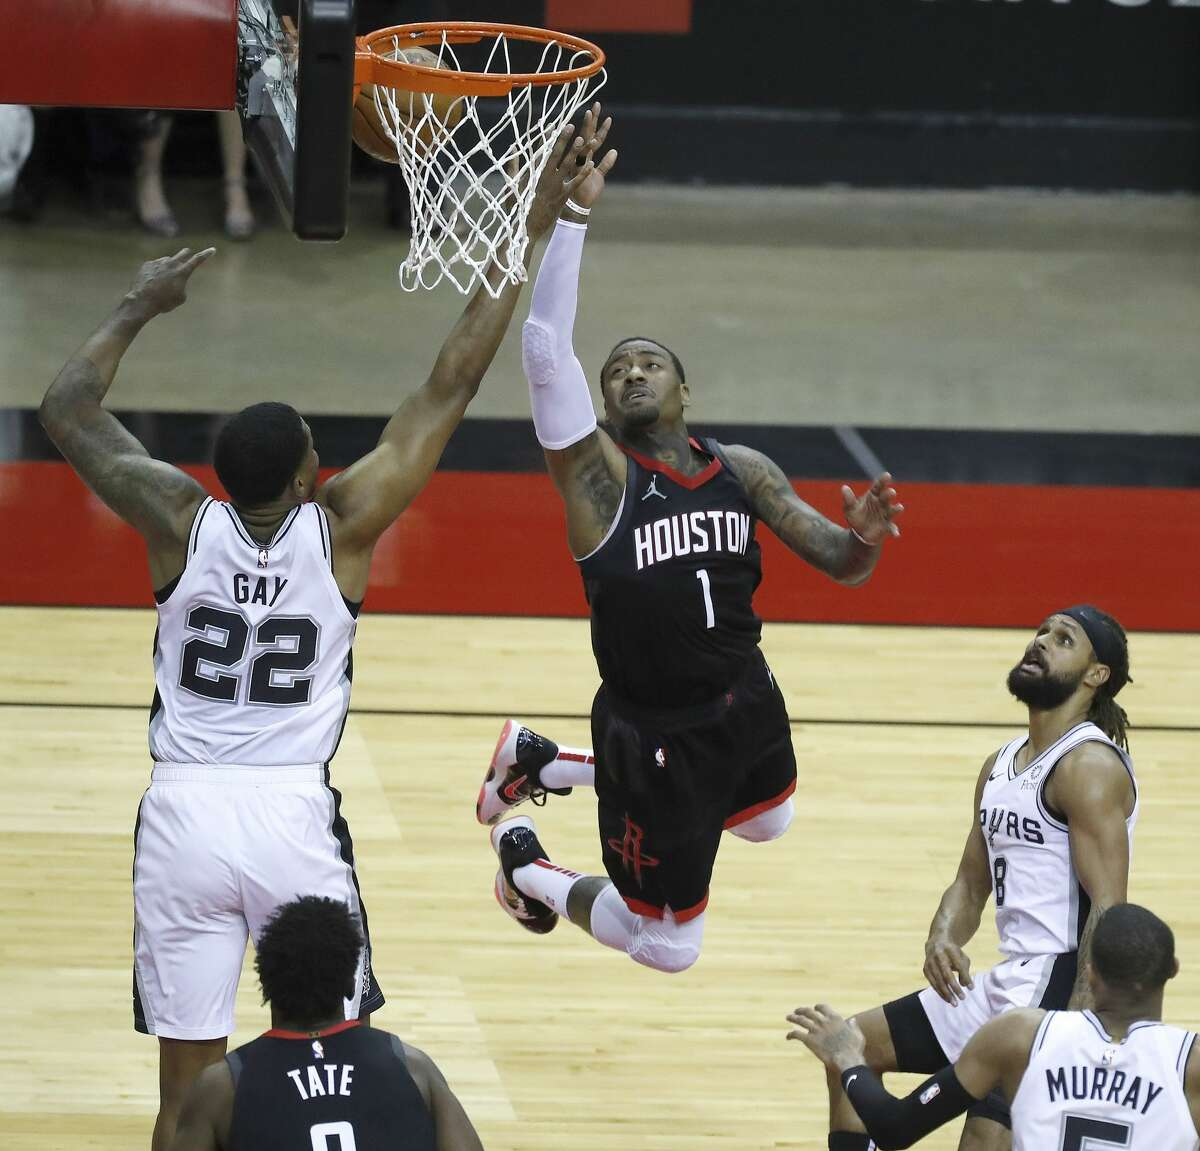 Houston Rockets guard John Wall (1) goes to the basket against San Antonio Spurs forward Rudy Gay (22) during the first half of an NBA basketball game at Toyota Center, in Houston, Saturday, Feb. 6.